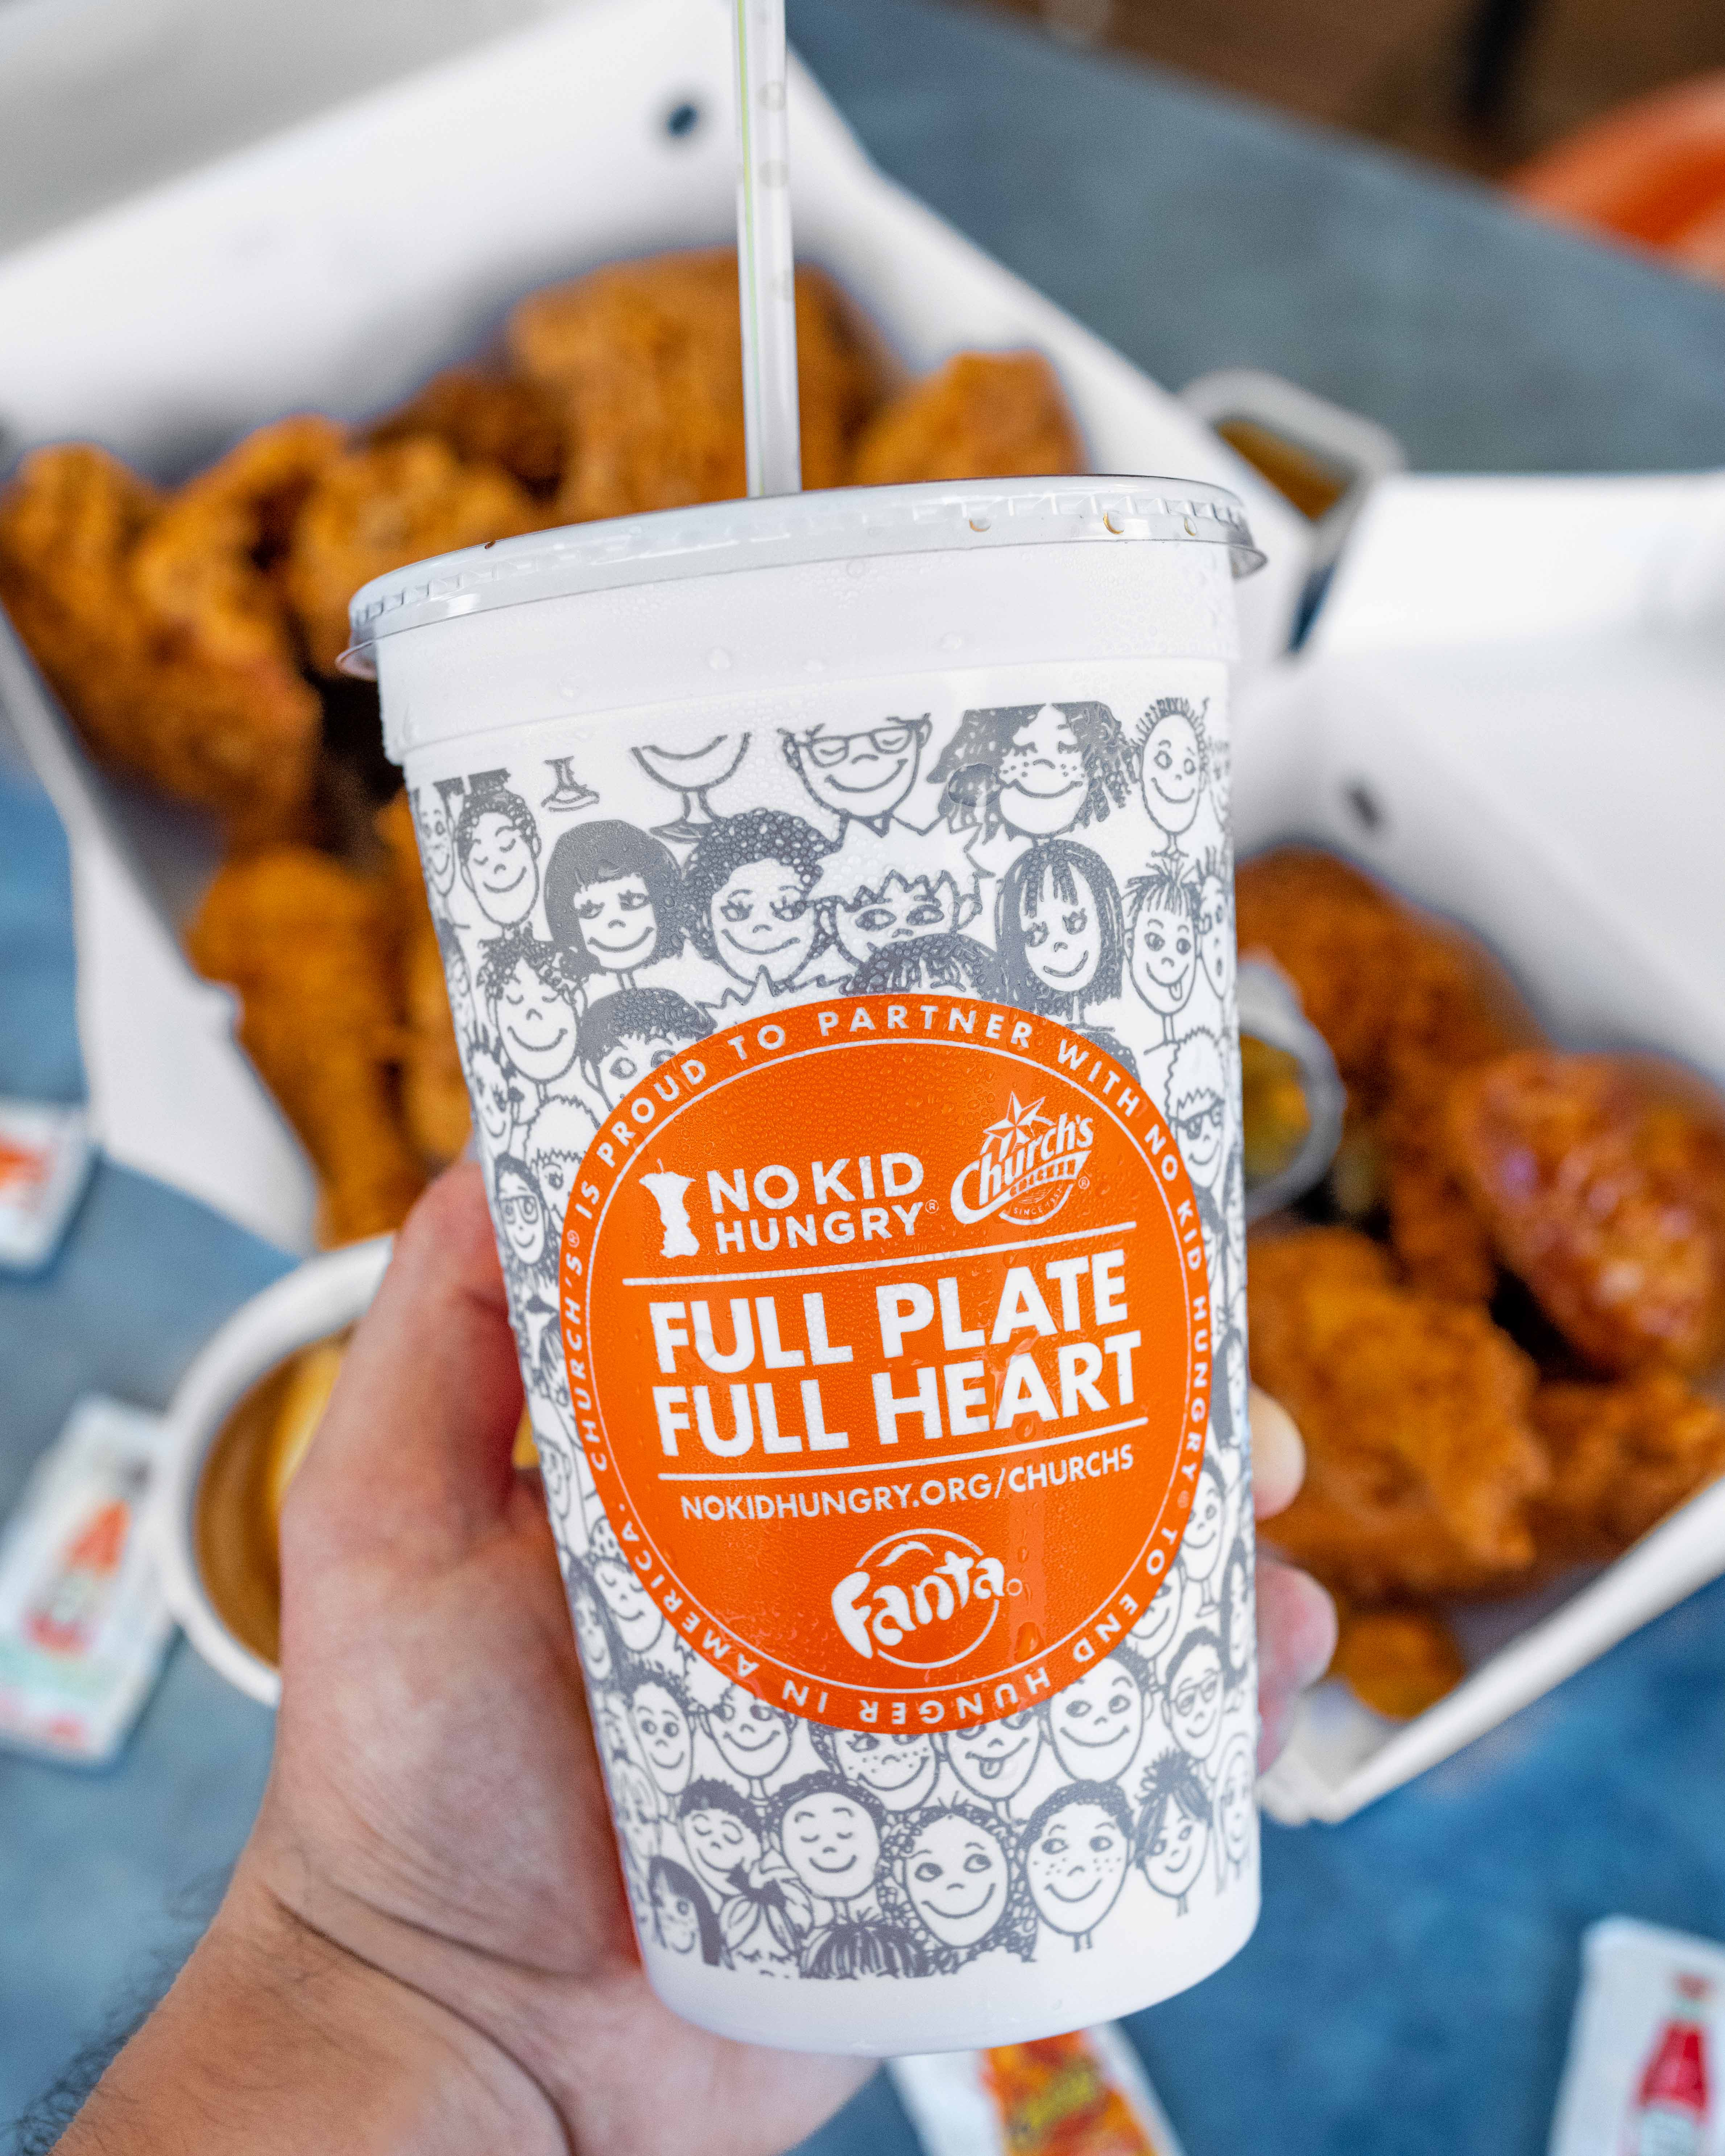 Church's Chicken #NoKidHungry Cup Held Over Chicken